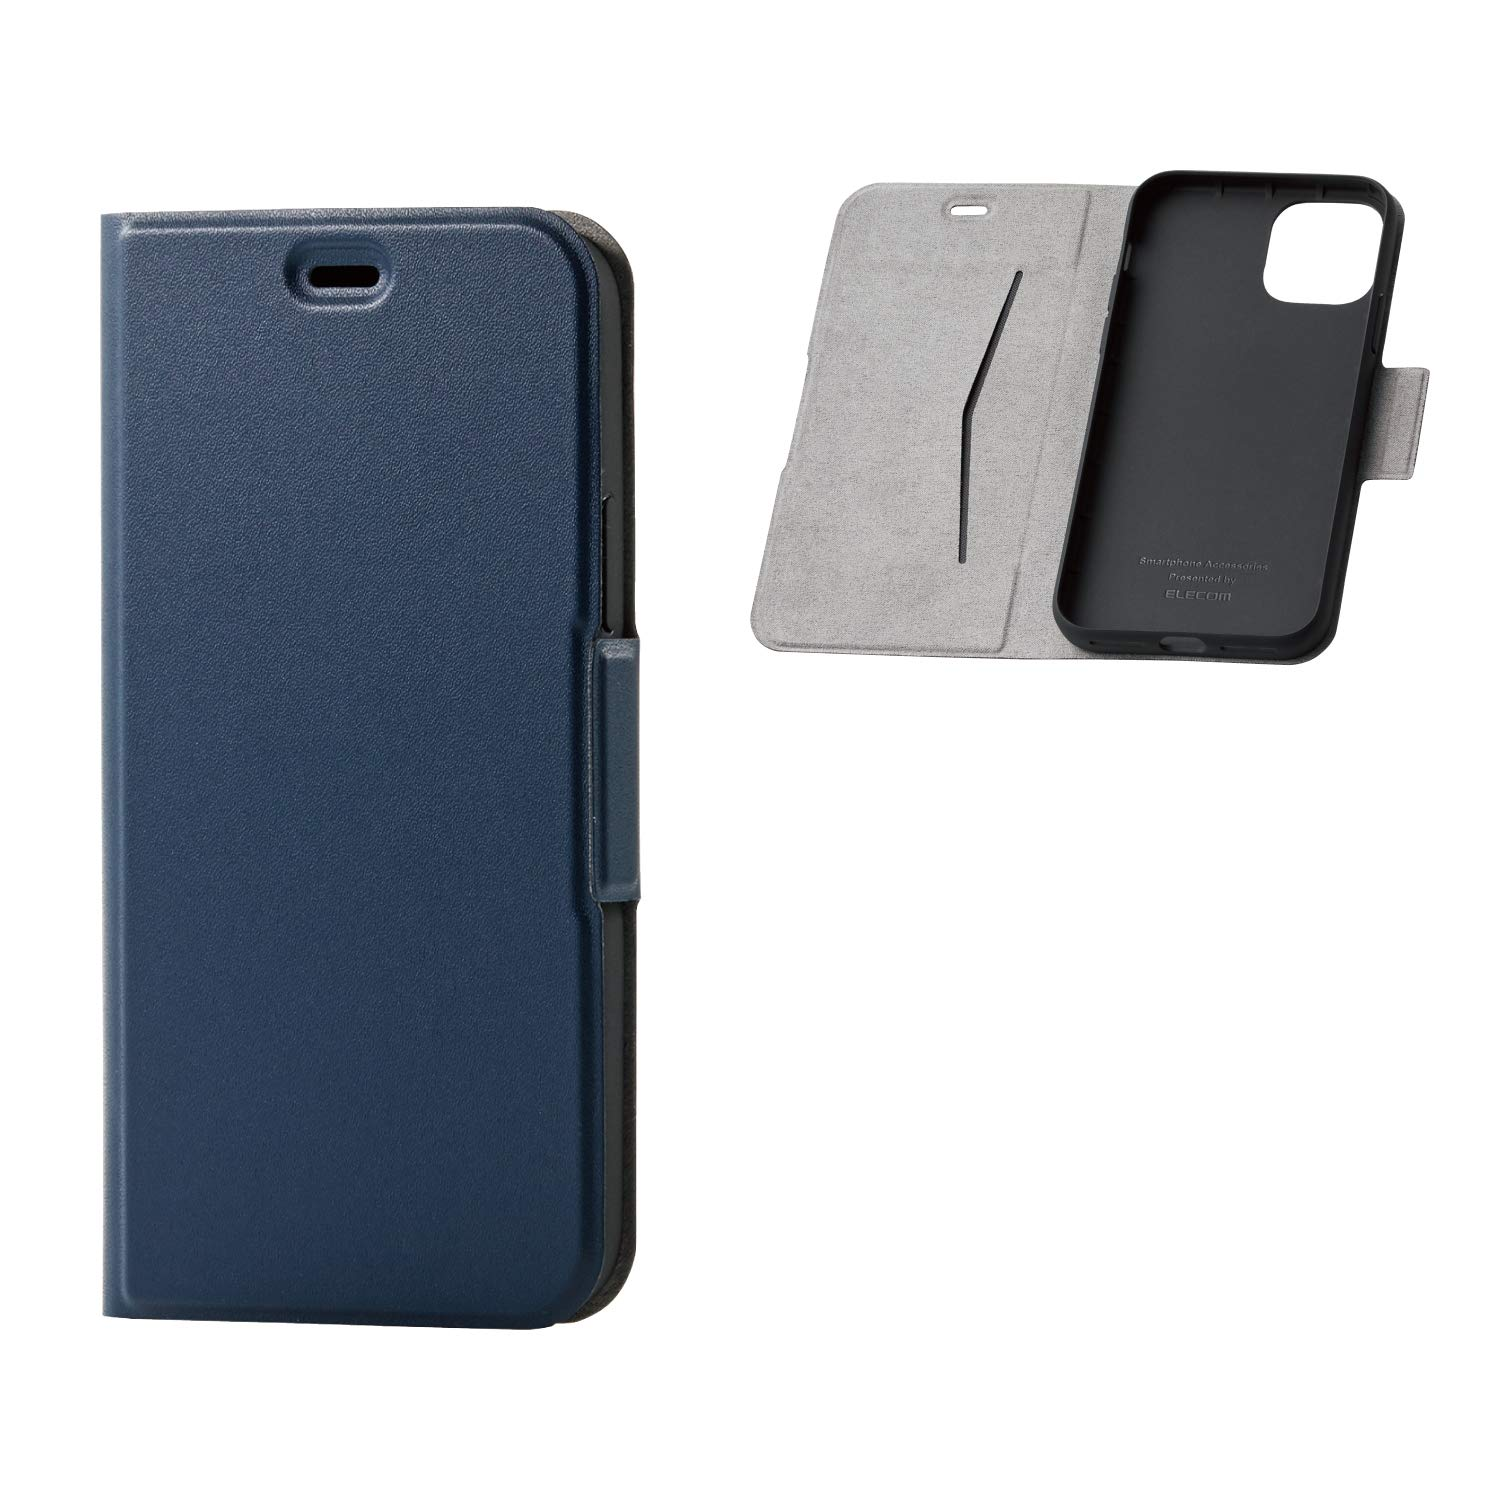 ELECOM-Japan Brand- Smartphone PU Leather Flip Case Slim and Magnetic Type/Compatible with iPhone 11 Pro/Navy/PM-A19BPLFUNV